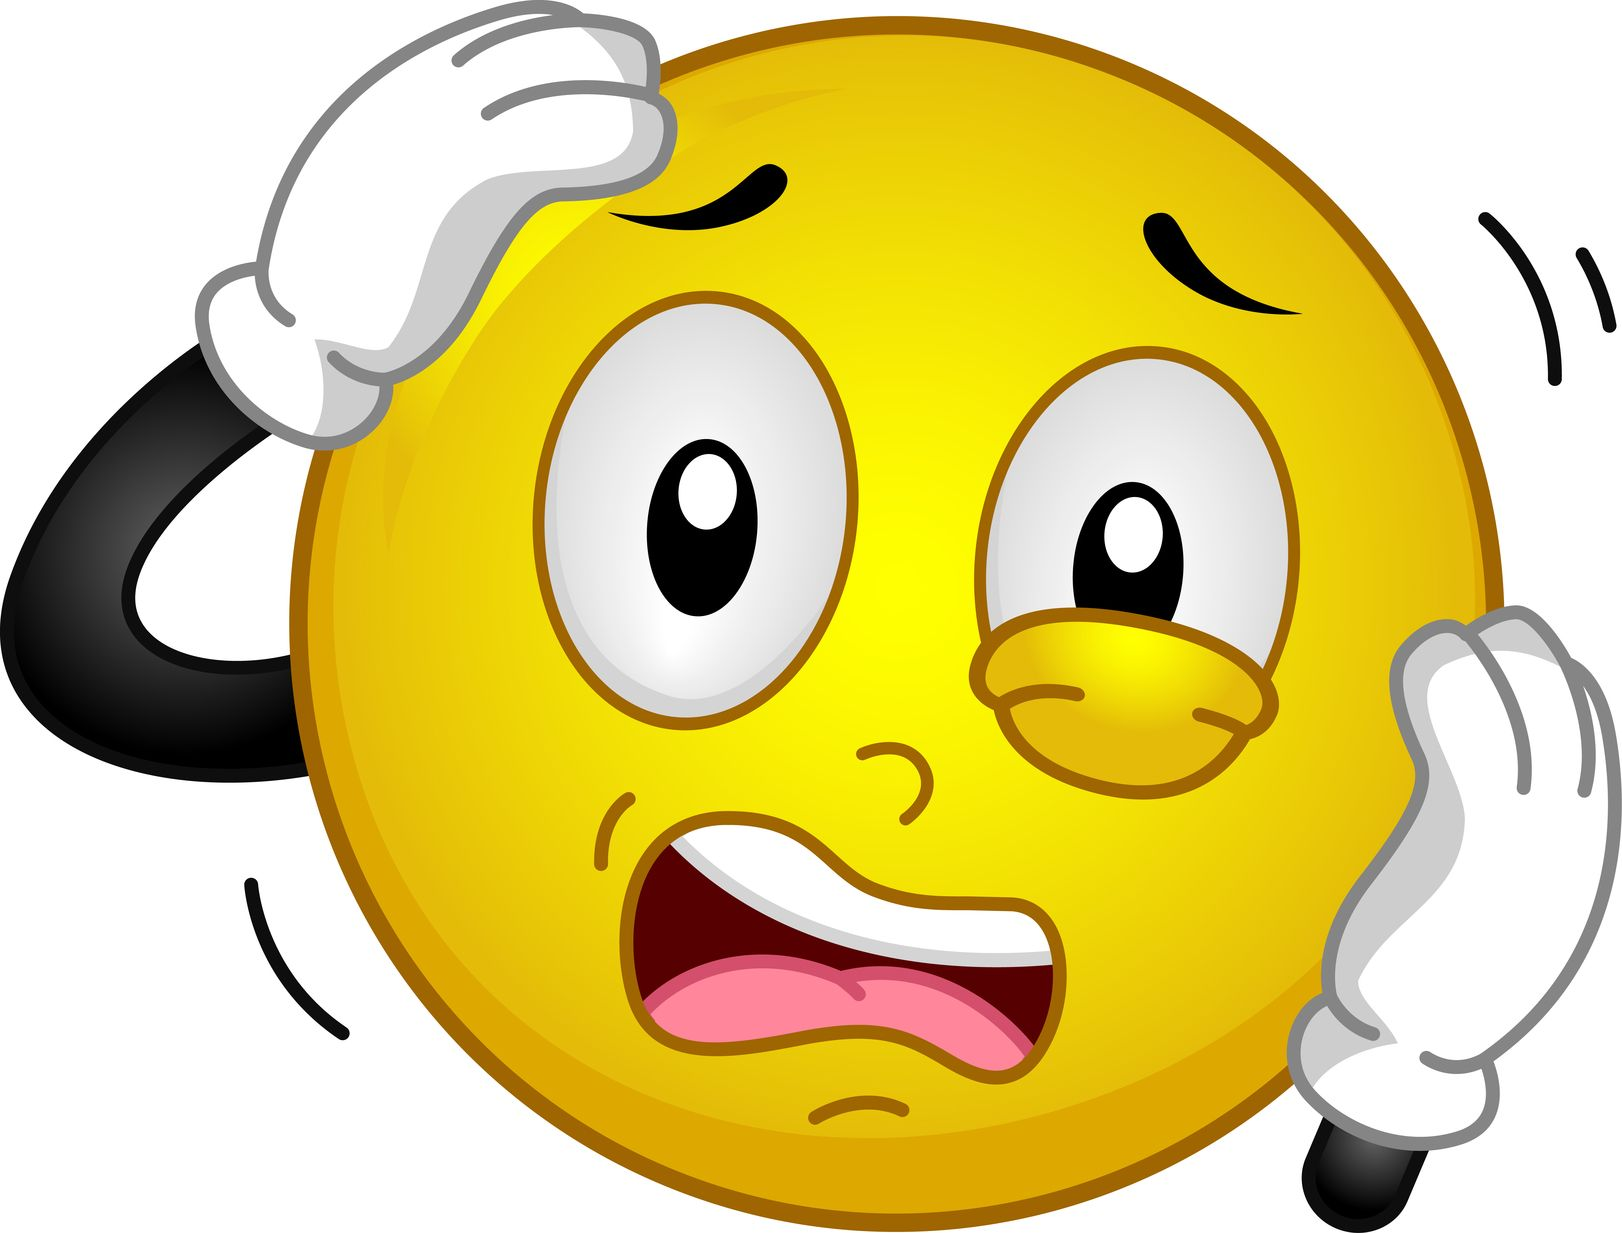 confused smiley face clip art - google search | smileys | pinterest